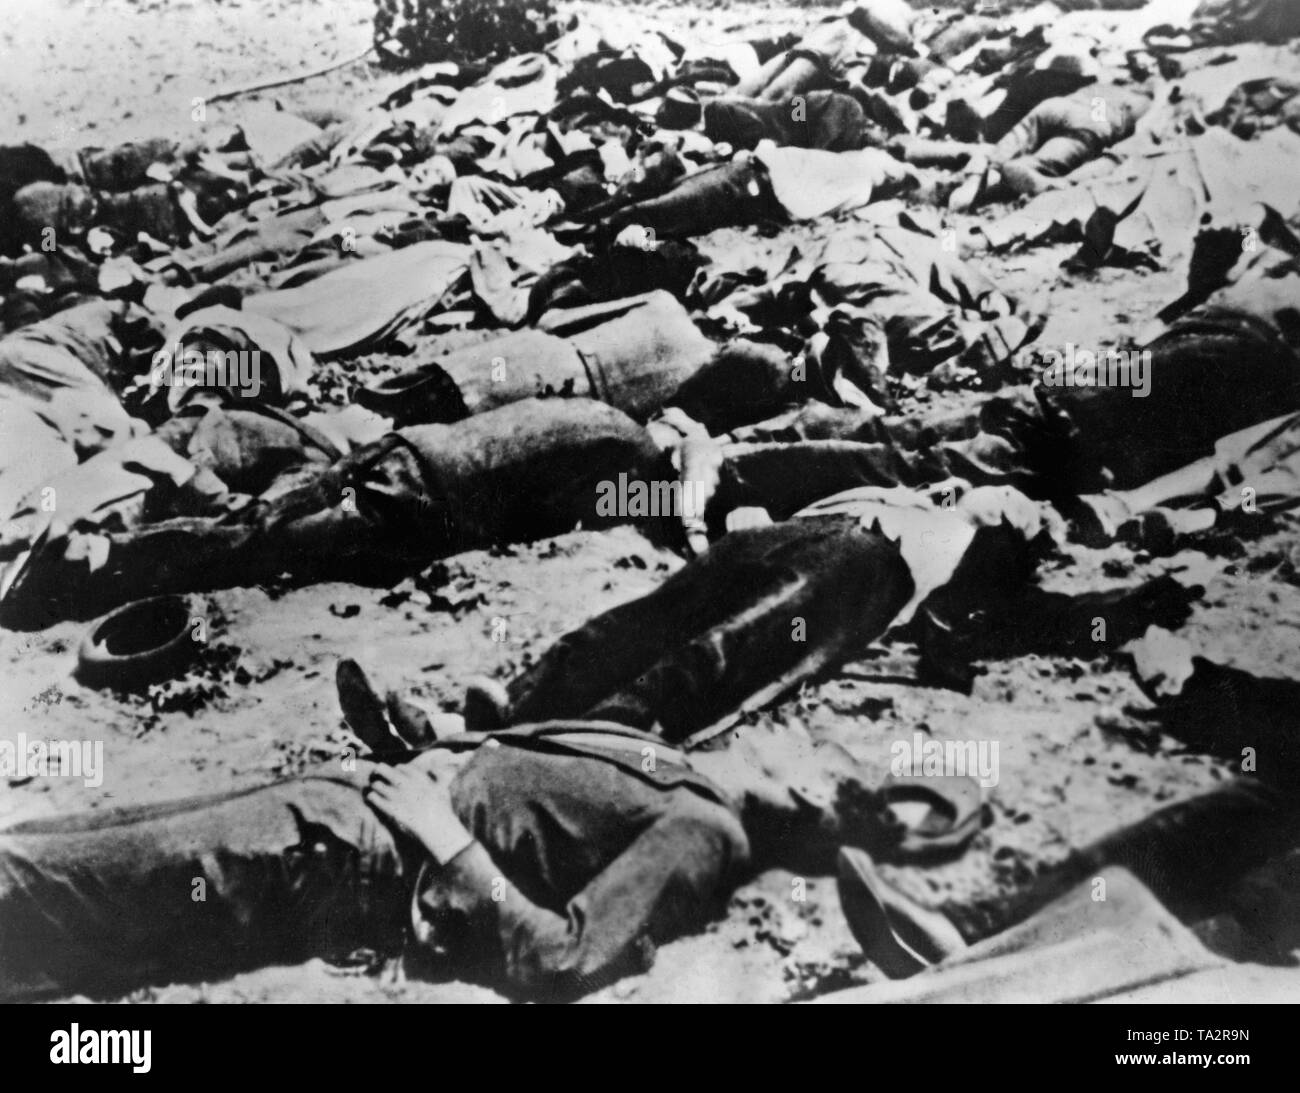 In the course of the successful Operation Anthropoid, it comes to retaliation against the Czech population. The Czech village Lidice is completely destroyed by the Wehrmacht on June 10, 1942. The men are shot dead, and the women and children are brought to concentration camps. Stock Photo